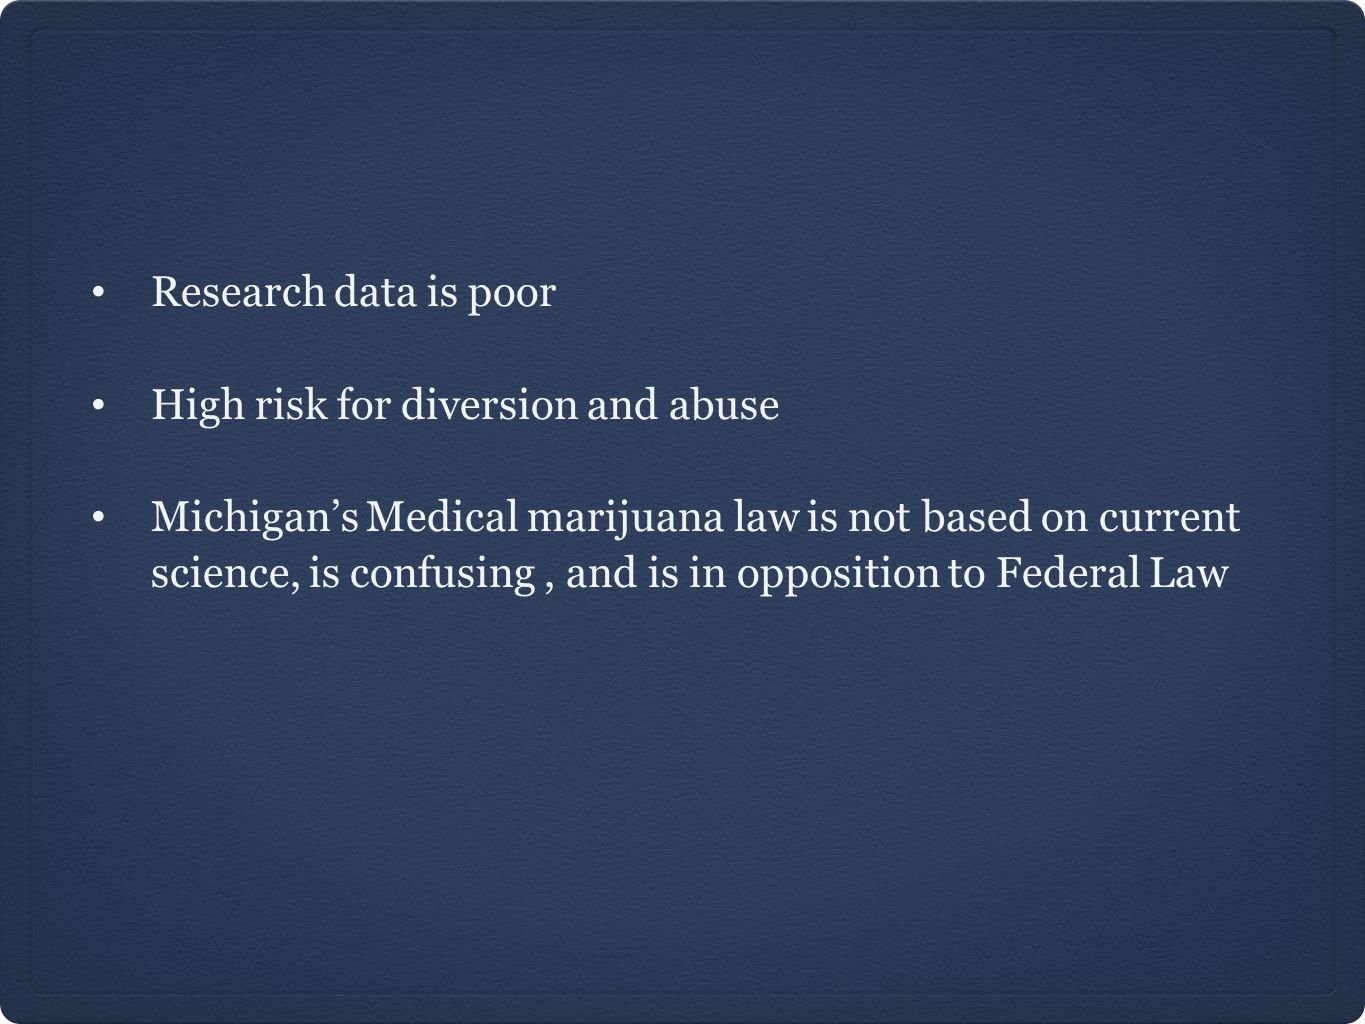 Research data is poor High risk for diversion and abuse Michigan's Medical marijuana law is not based on current science, is confusing, and is in oppo